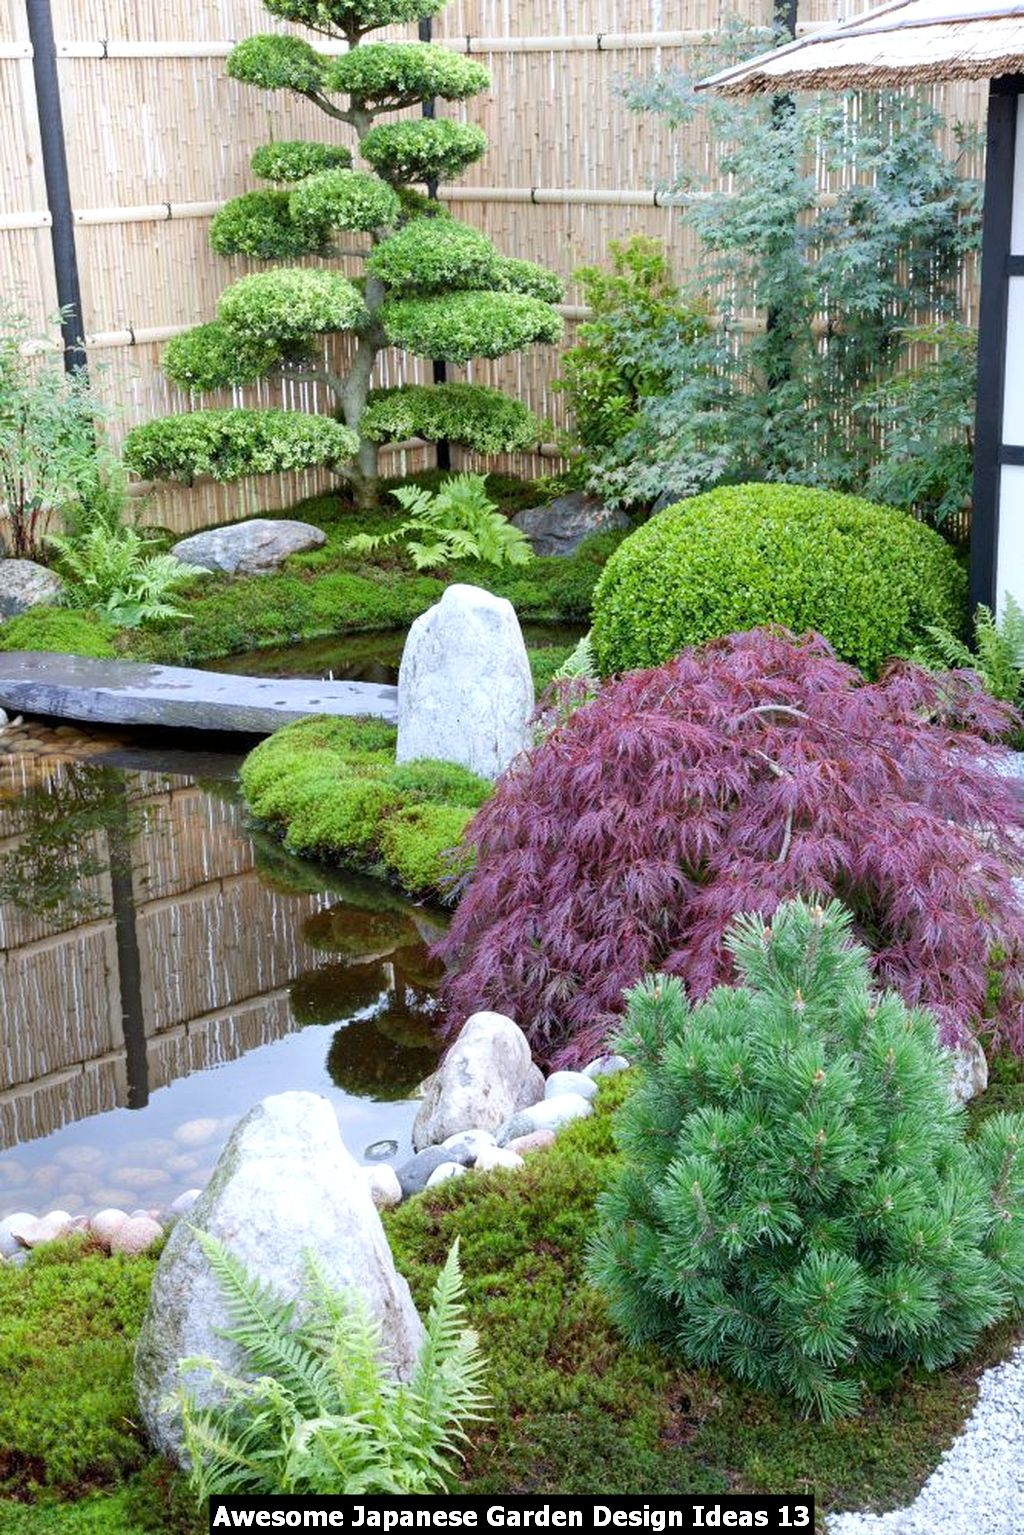 Awesome Japanese Garden Design Ideas - HOMYHOMEE